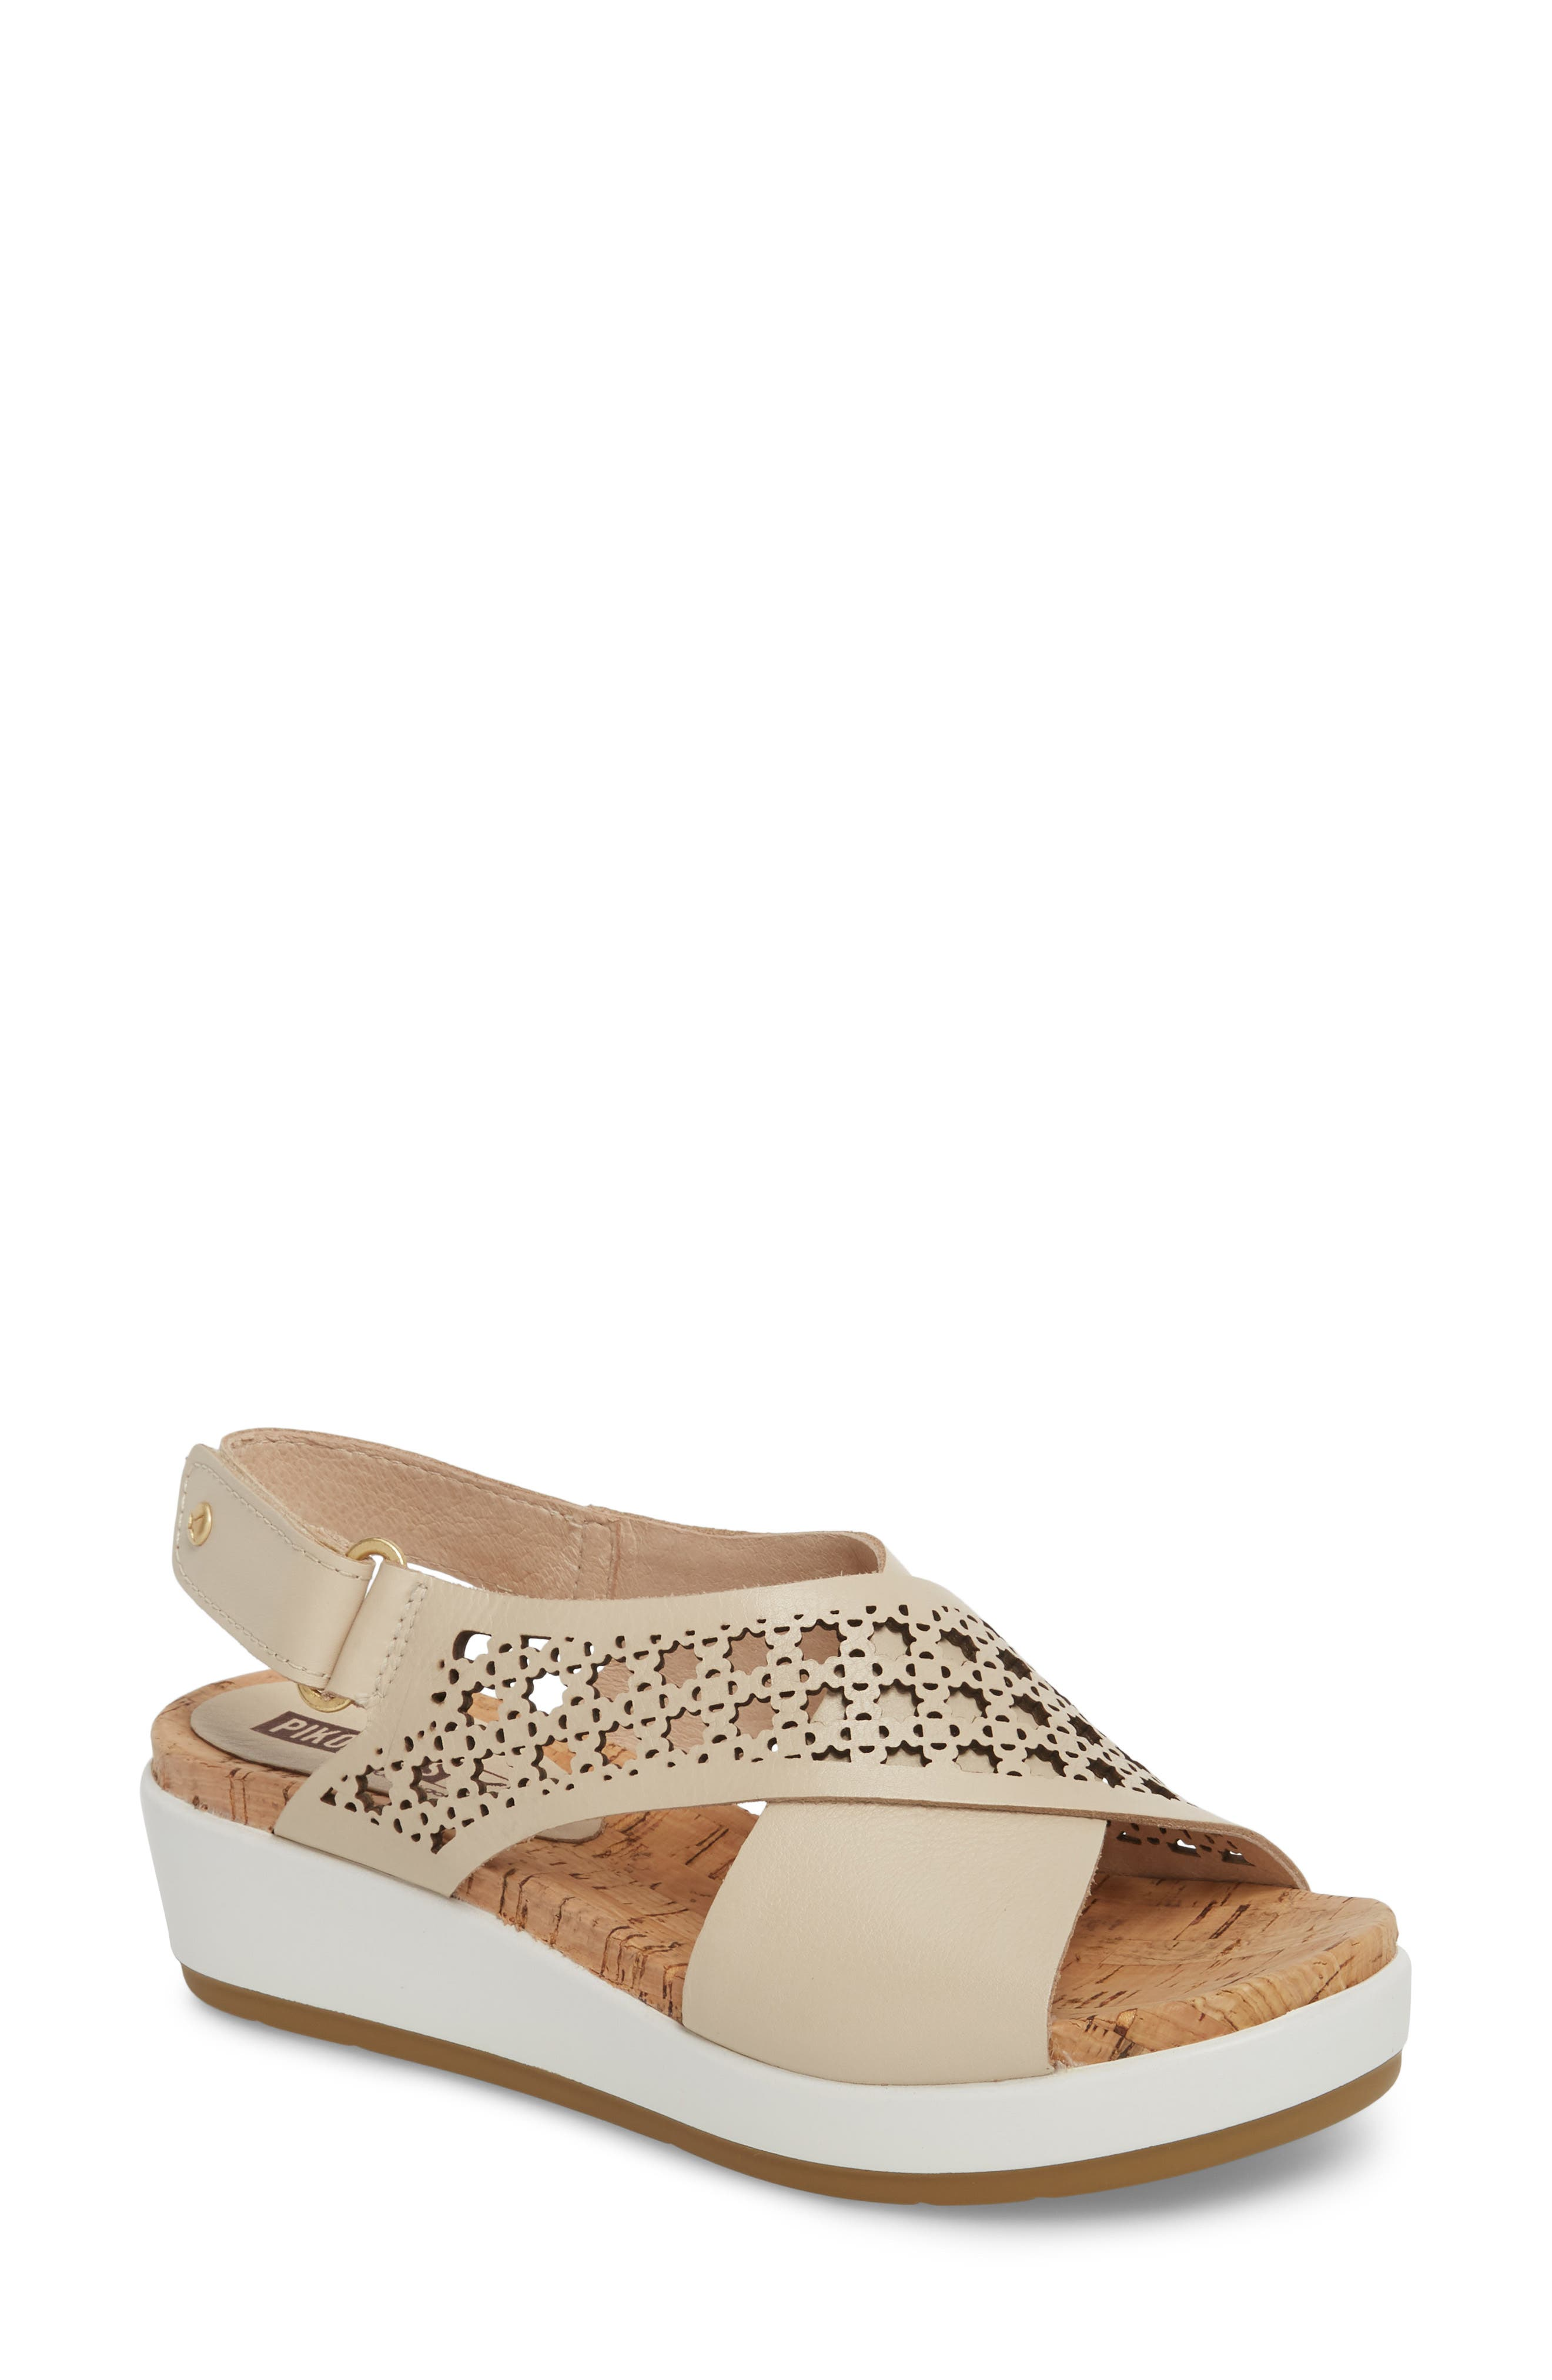 Mykonos Sandal,                         Main,                         color, MARFIL LEATHER